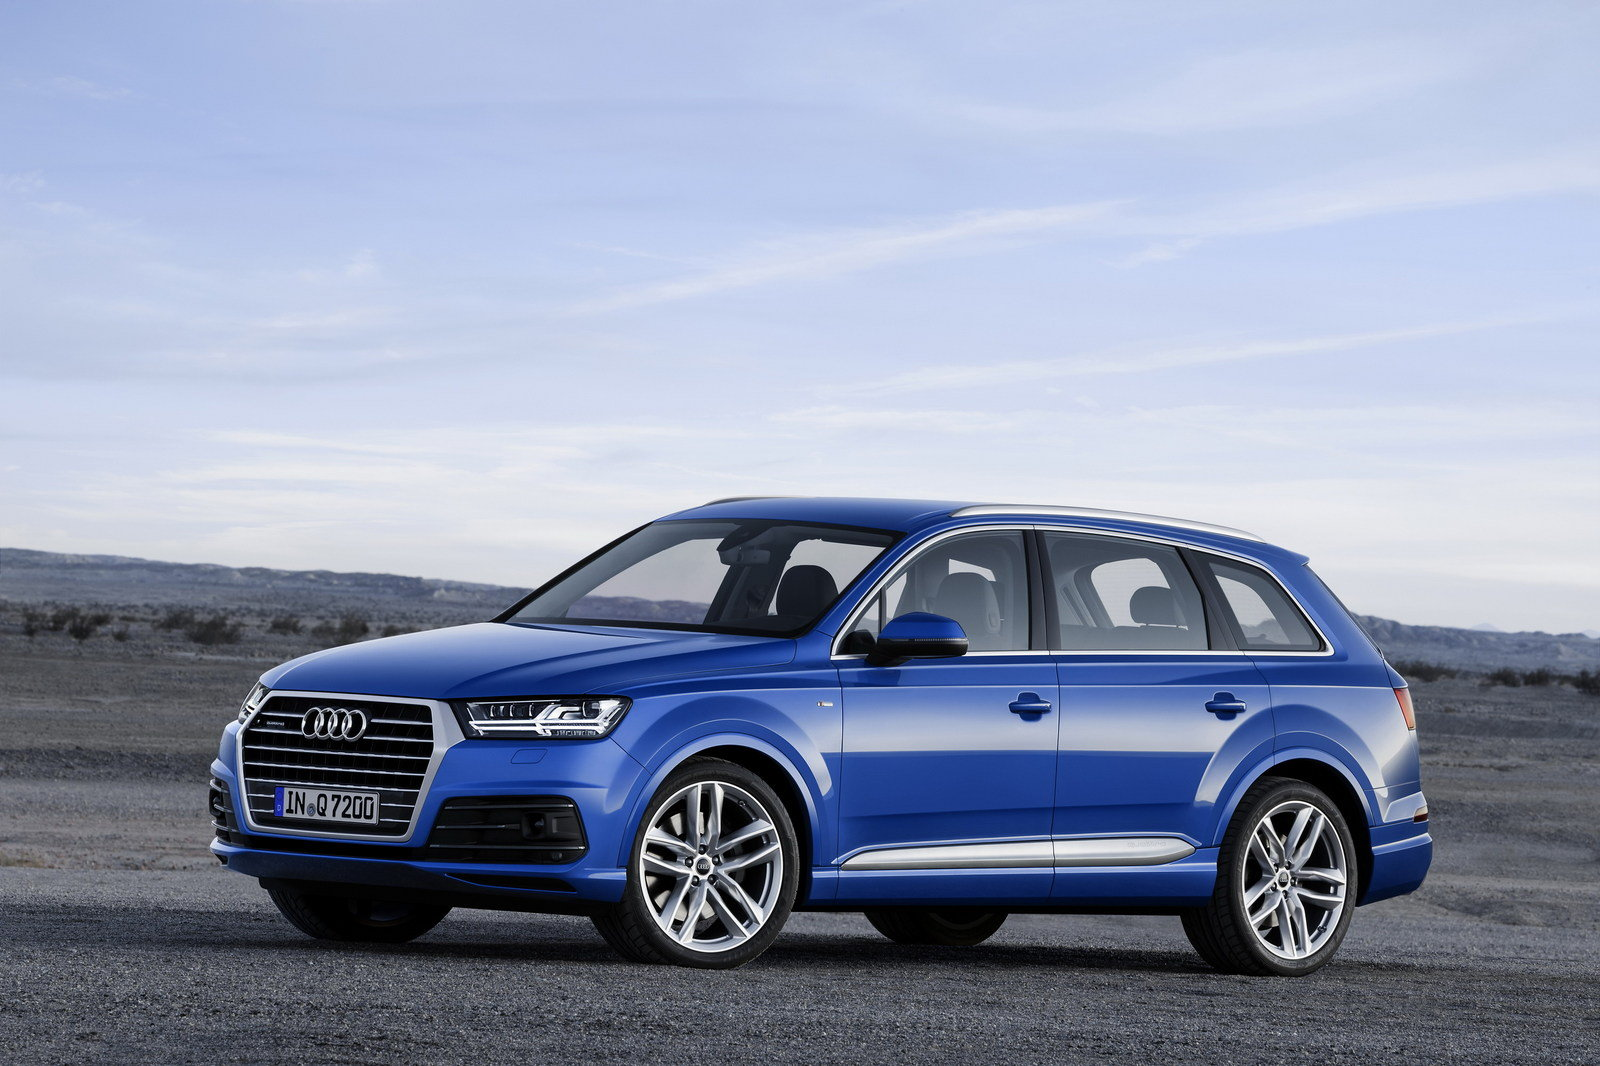 2016 audi q7 picture 585693 car review top speed. Black Bedroom Furniture Sets. Home Design Ideas